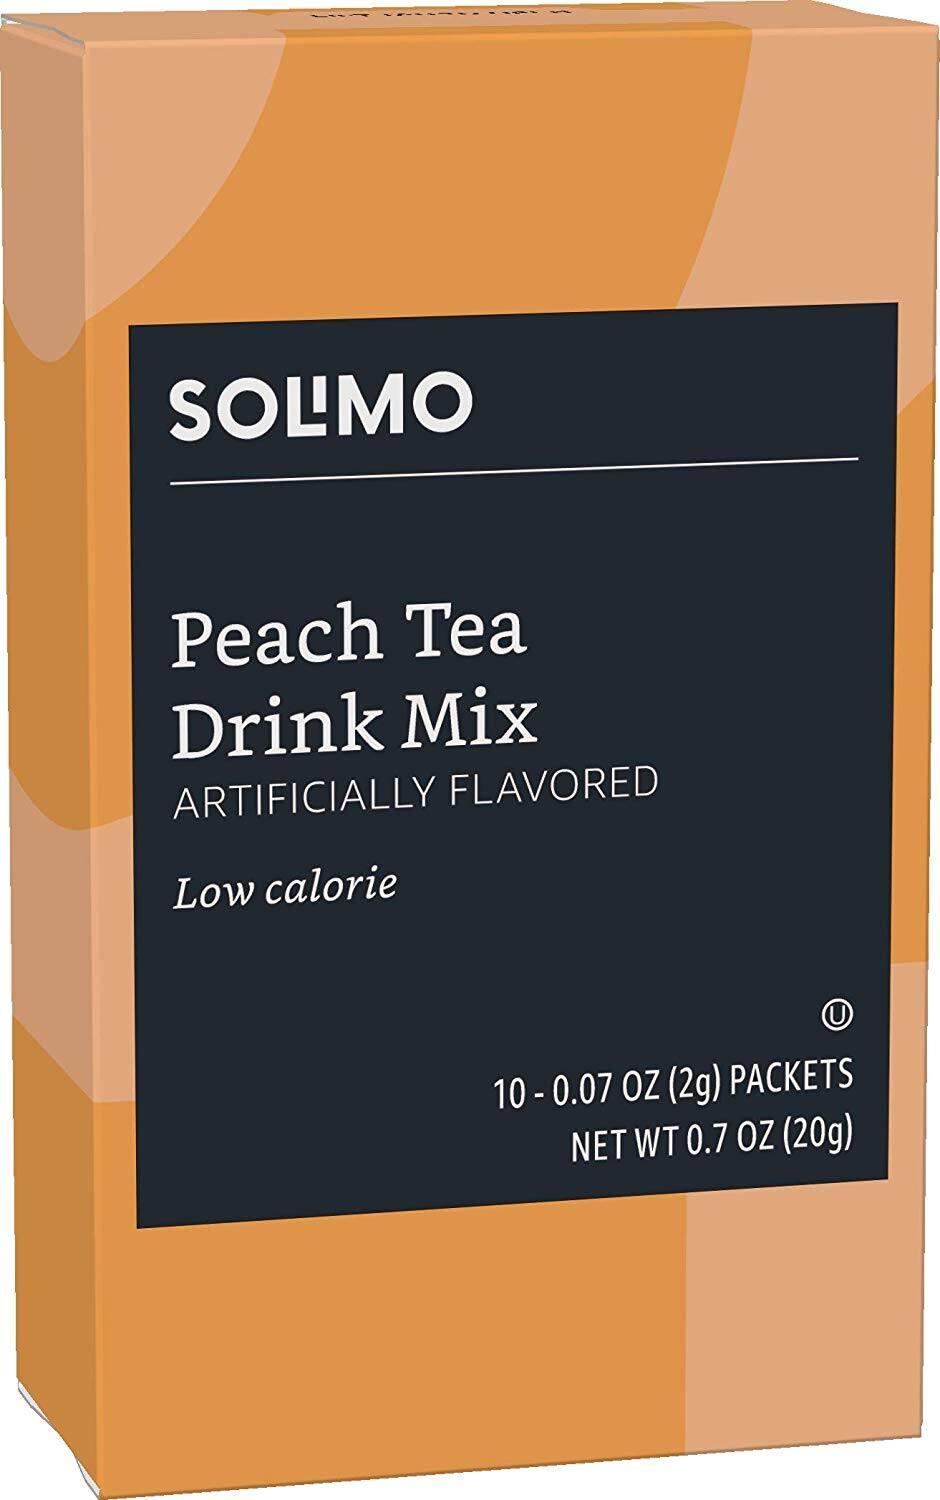 Cheap Amazon items for $1 credits with Prime shipping, Solimo Drink Mix (10 packets) $1.29, Choc or Vanilla sandwich cremes, $2.06, Vanilla wafers, $2.02